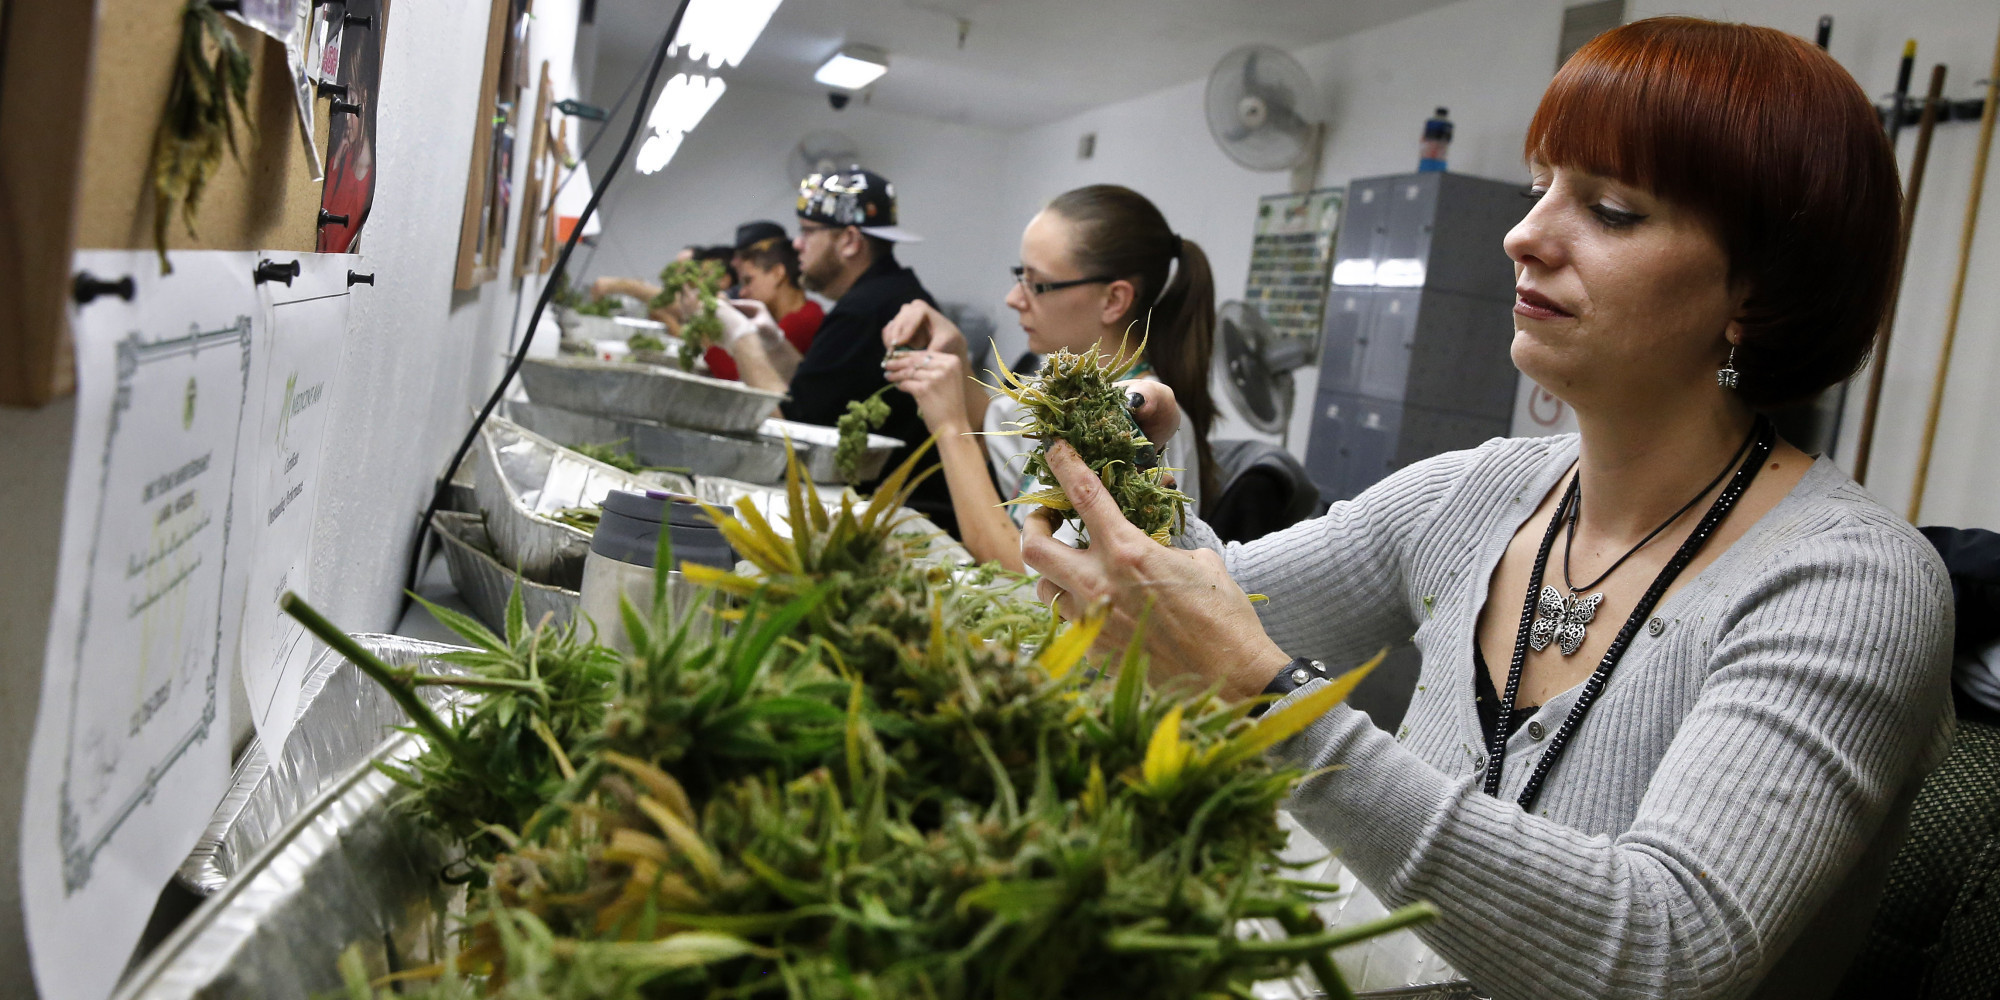 Colorado's Cannabis Industry Is Now Bigger Than Some Countries' Economy